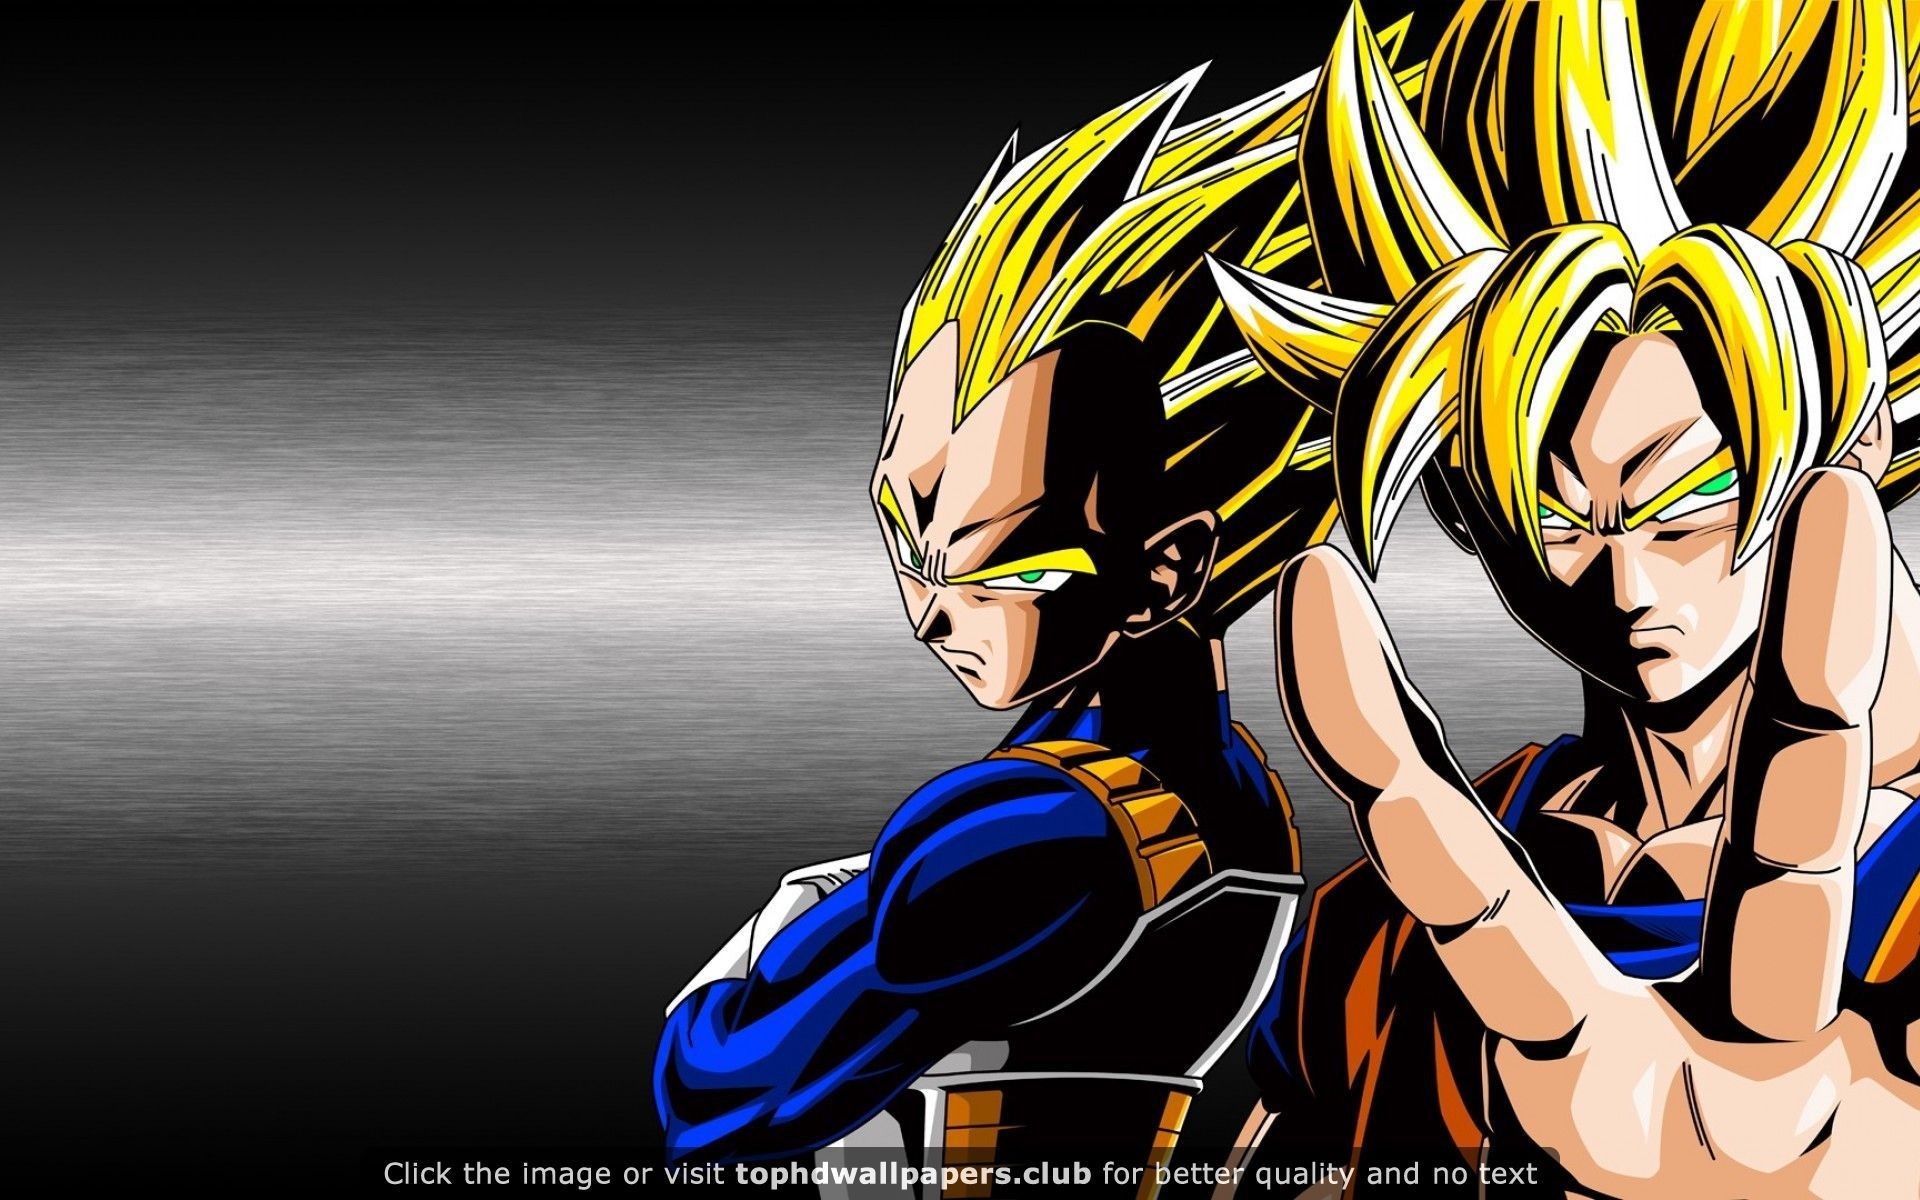 Dragon ball gt wallpaper hd 64 images - Dragon ball gt goku wallpaper ...